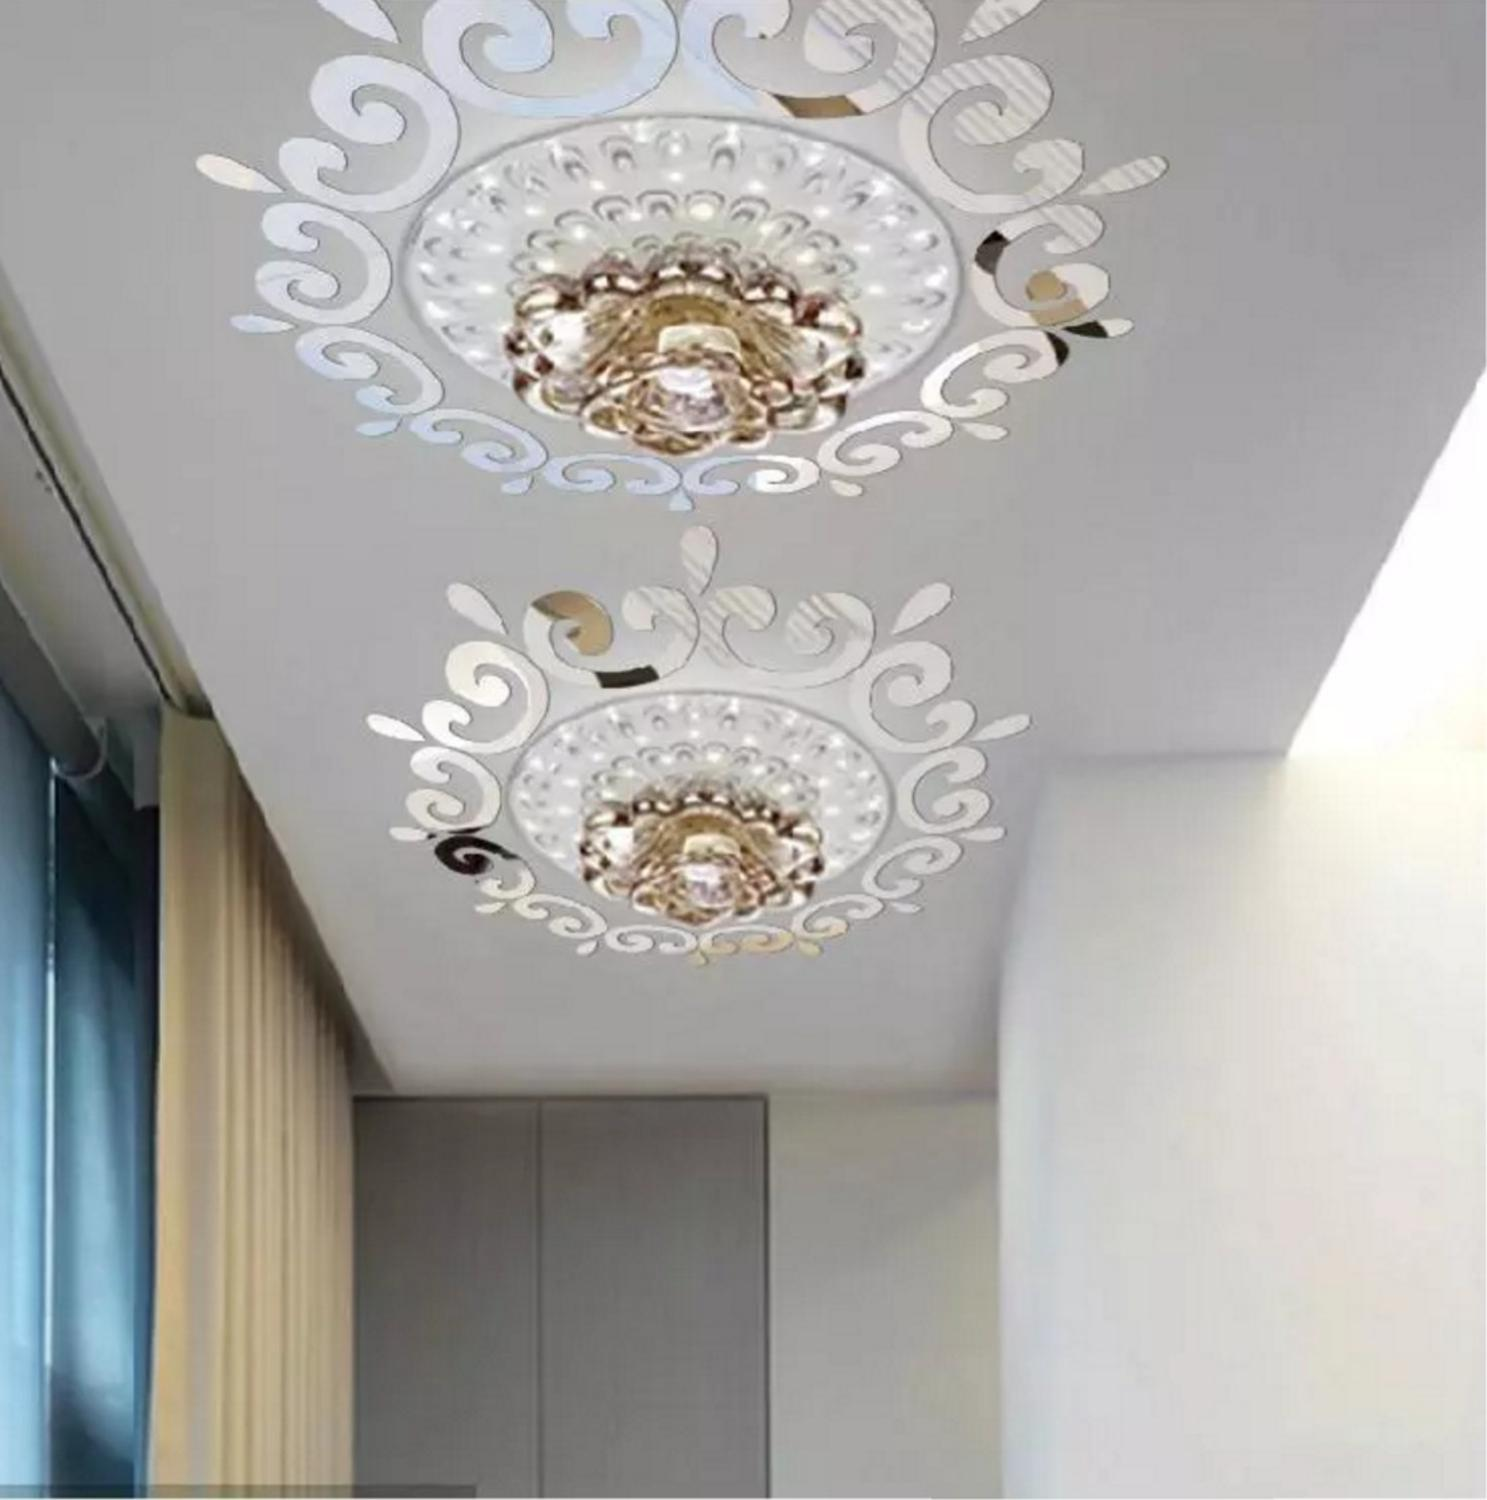 2019 Hottest ceiling Room Acrylic Decal Art DIY Mirror Light Decor 3D Wall Sticker Home Decoration European Style